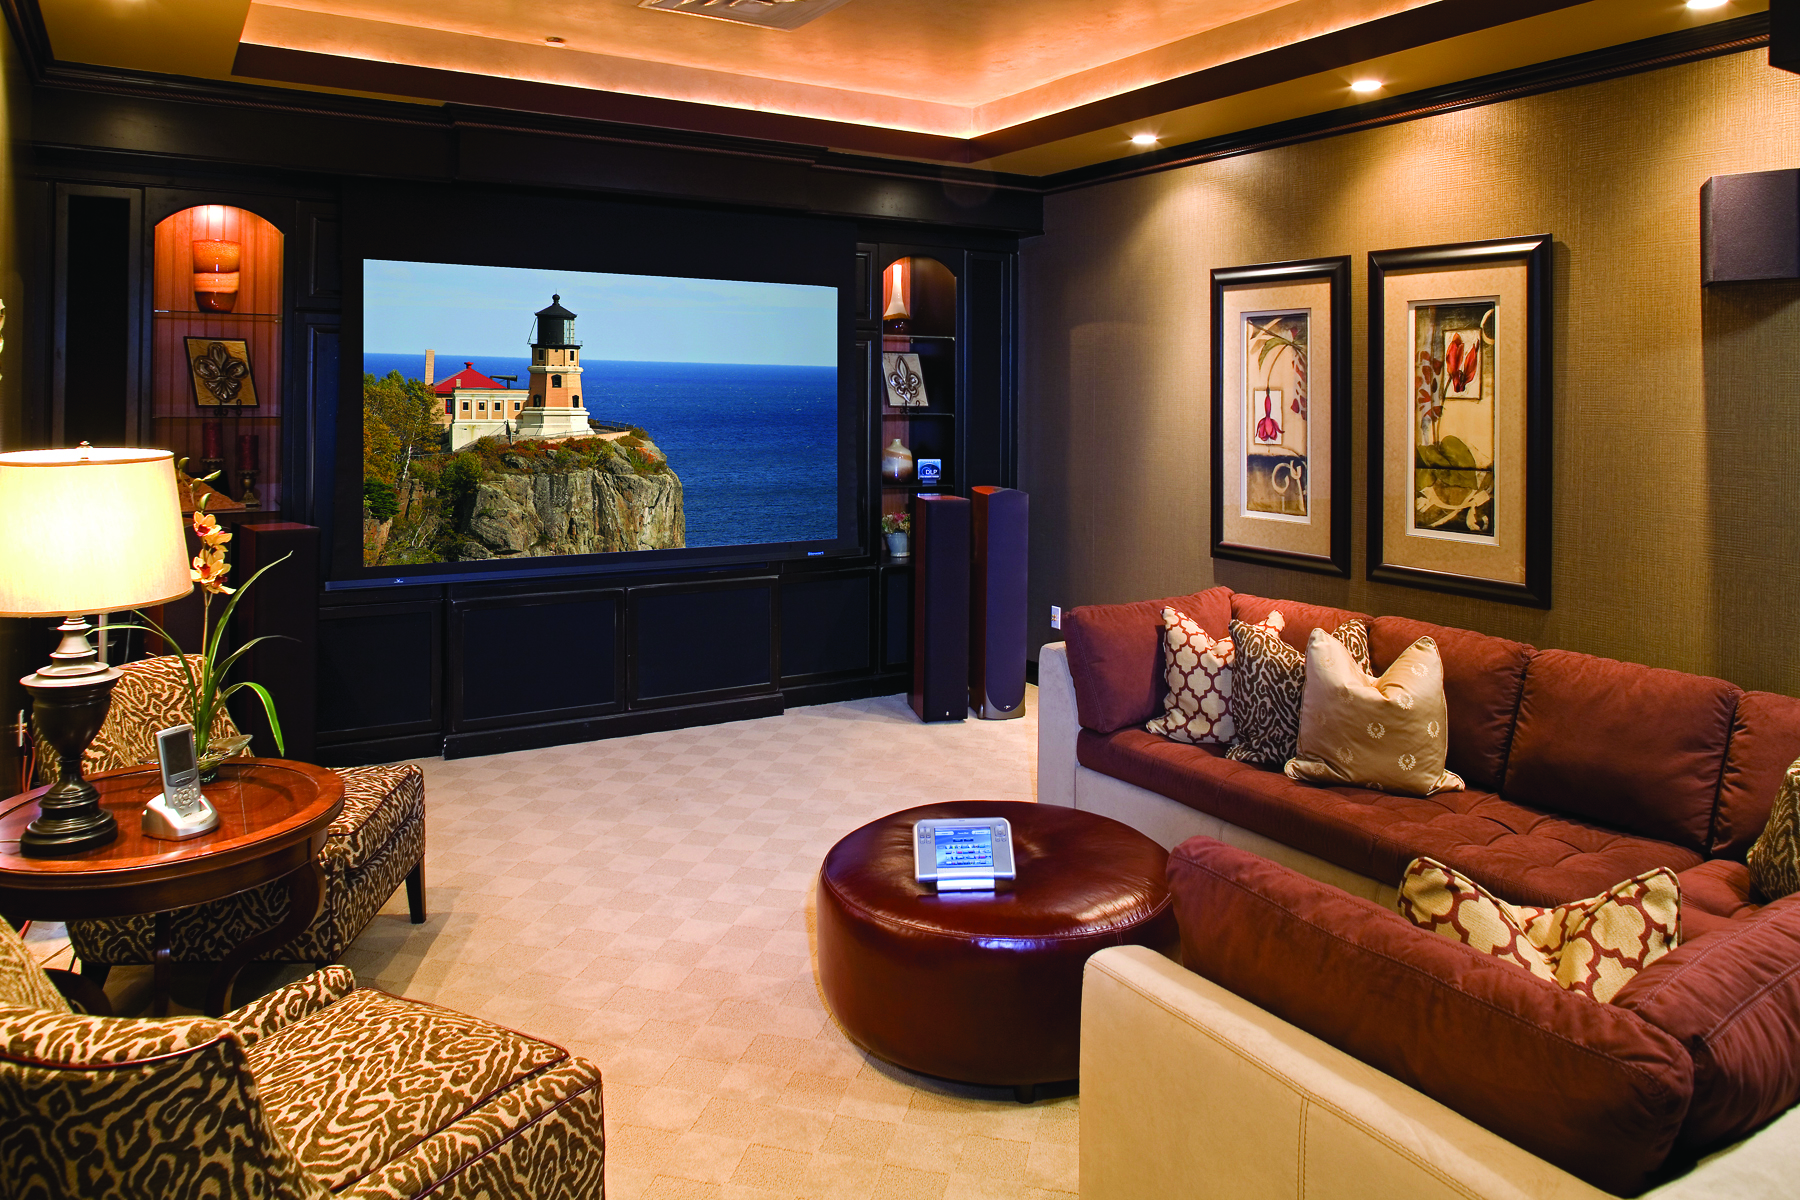 Remodel Your Bat Into A Home Theater